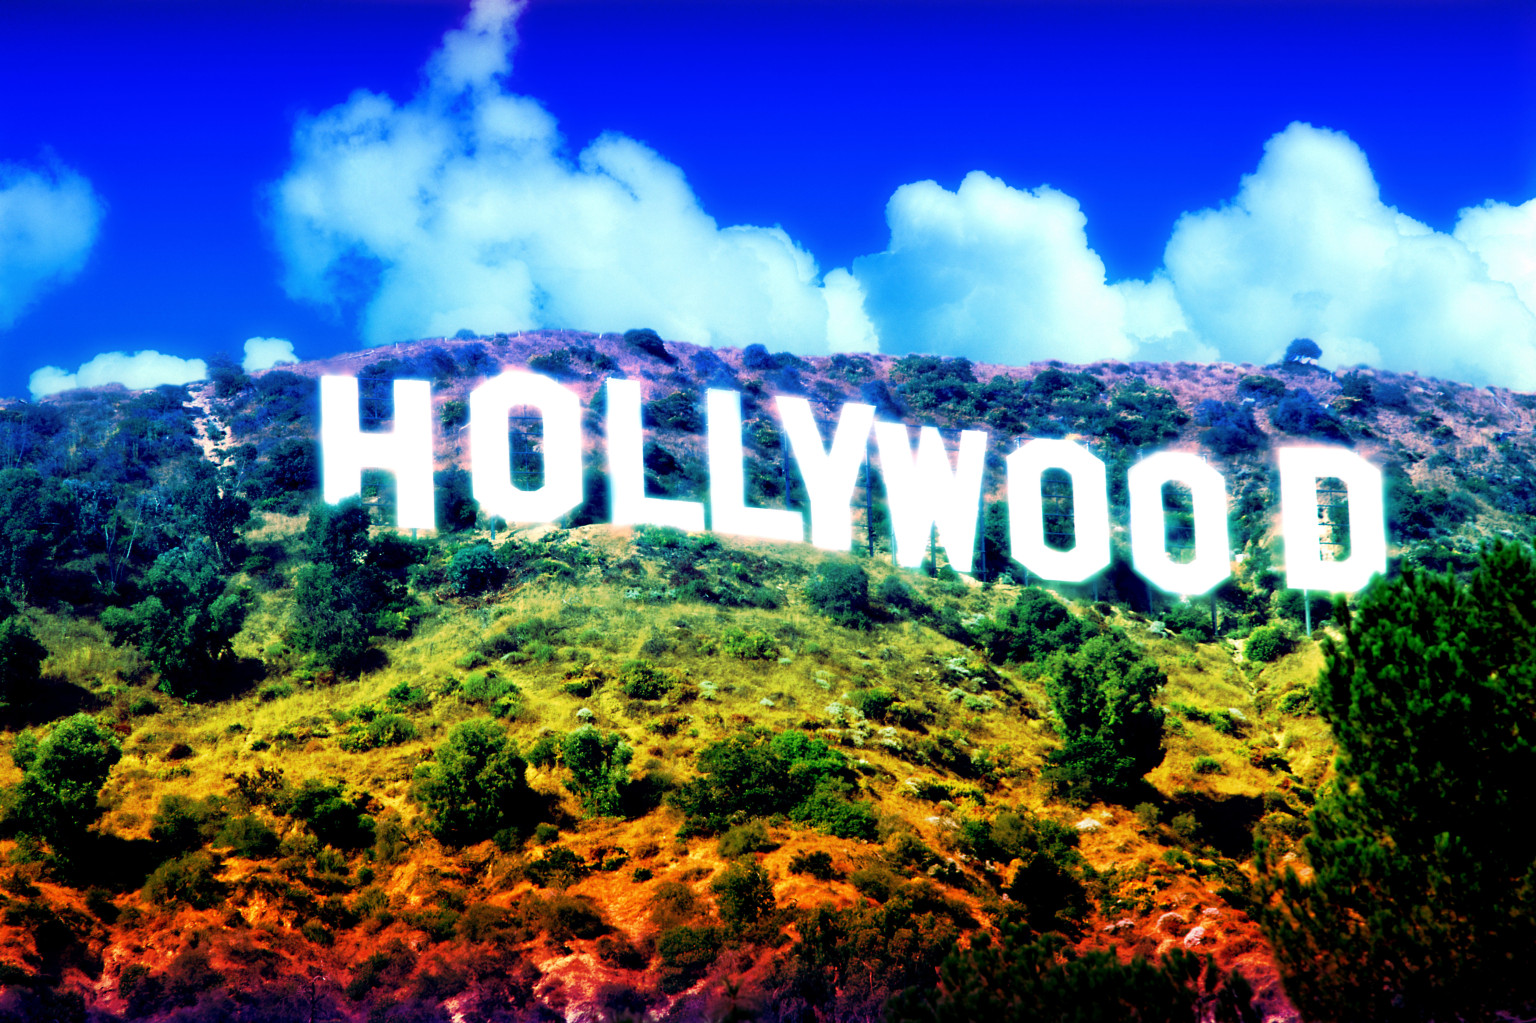 hollywood sign wallpapers posters movie night california lights history poster xana film fuente hollywoods frame code don